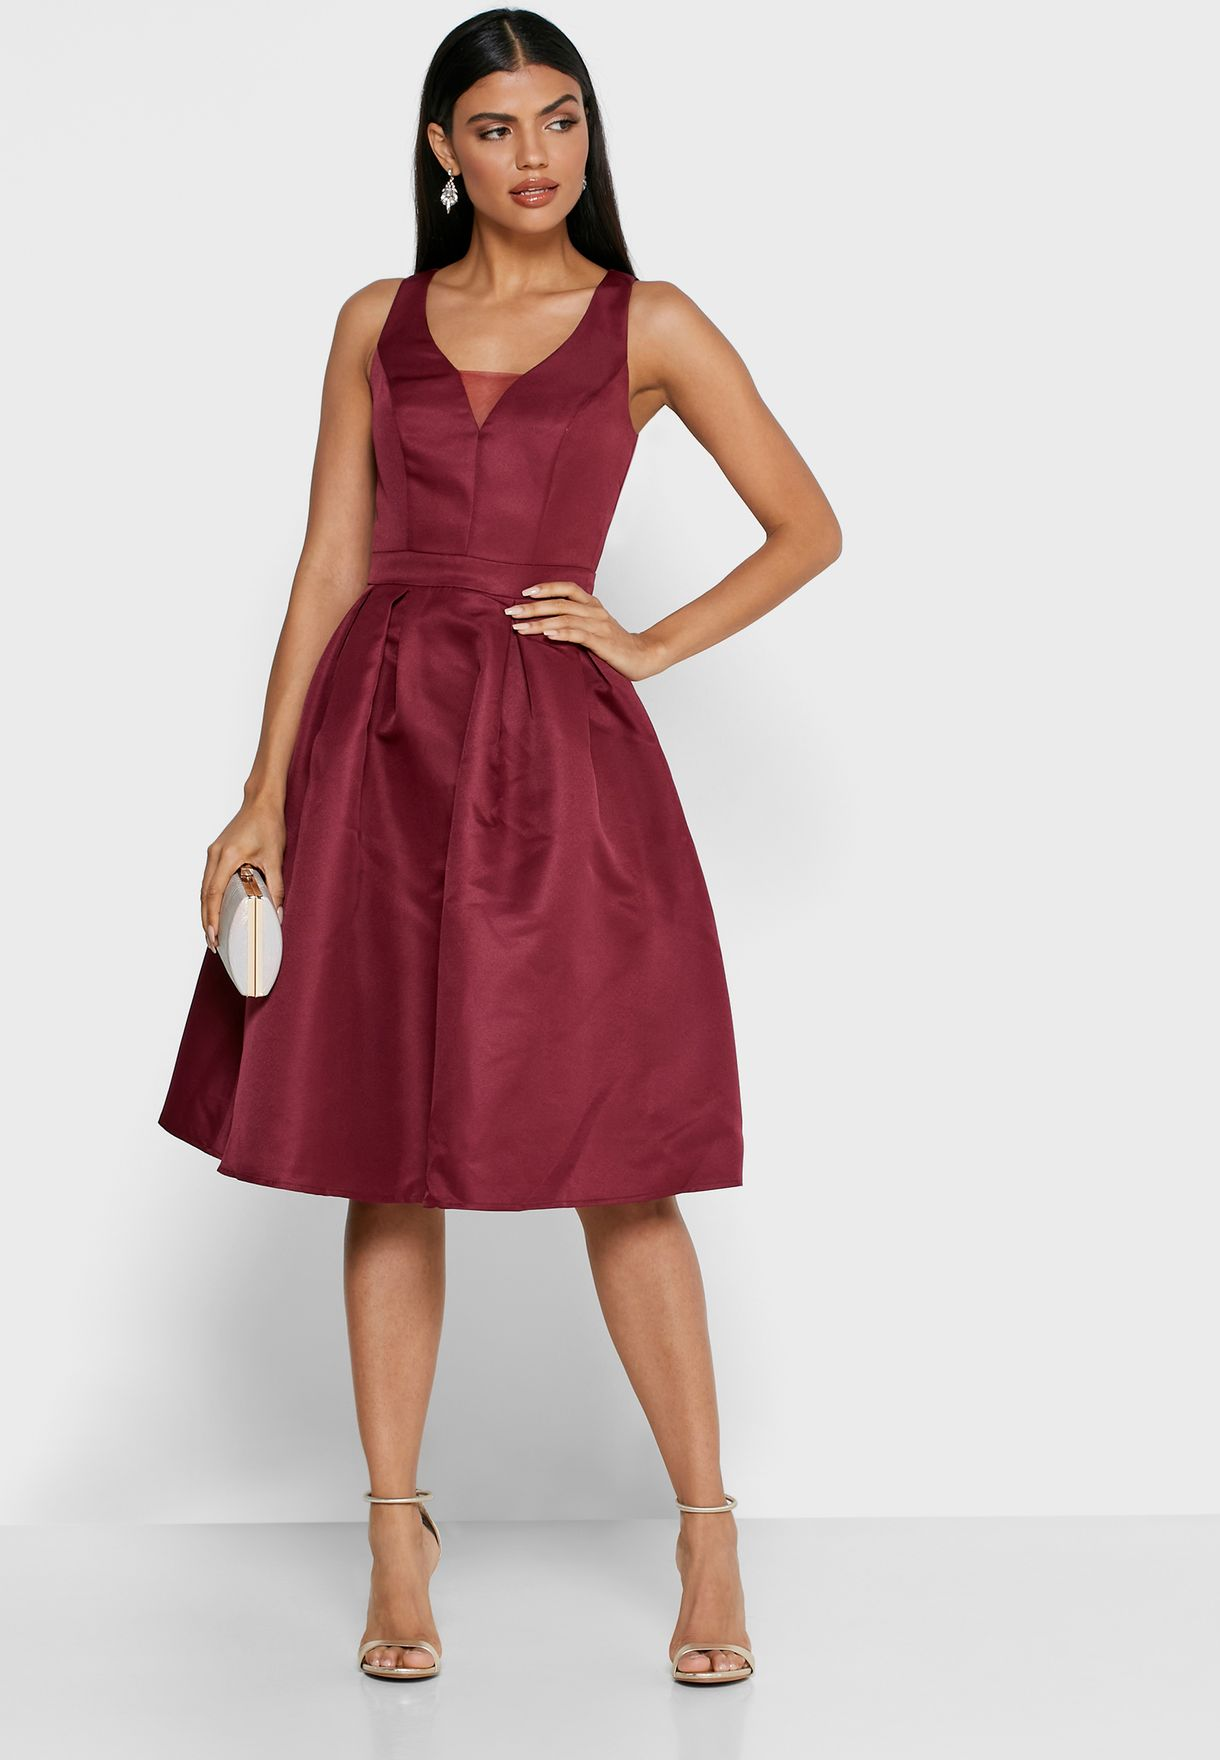 Buy Chi Chi London Red Plunge Illusion Pleated Ball Dress For Women In Mena Worldwide 7463bur